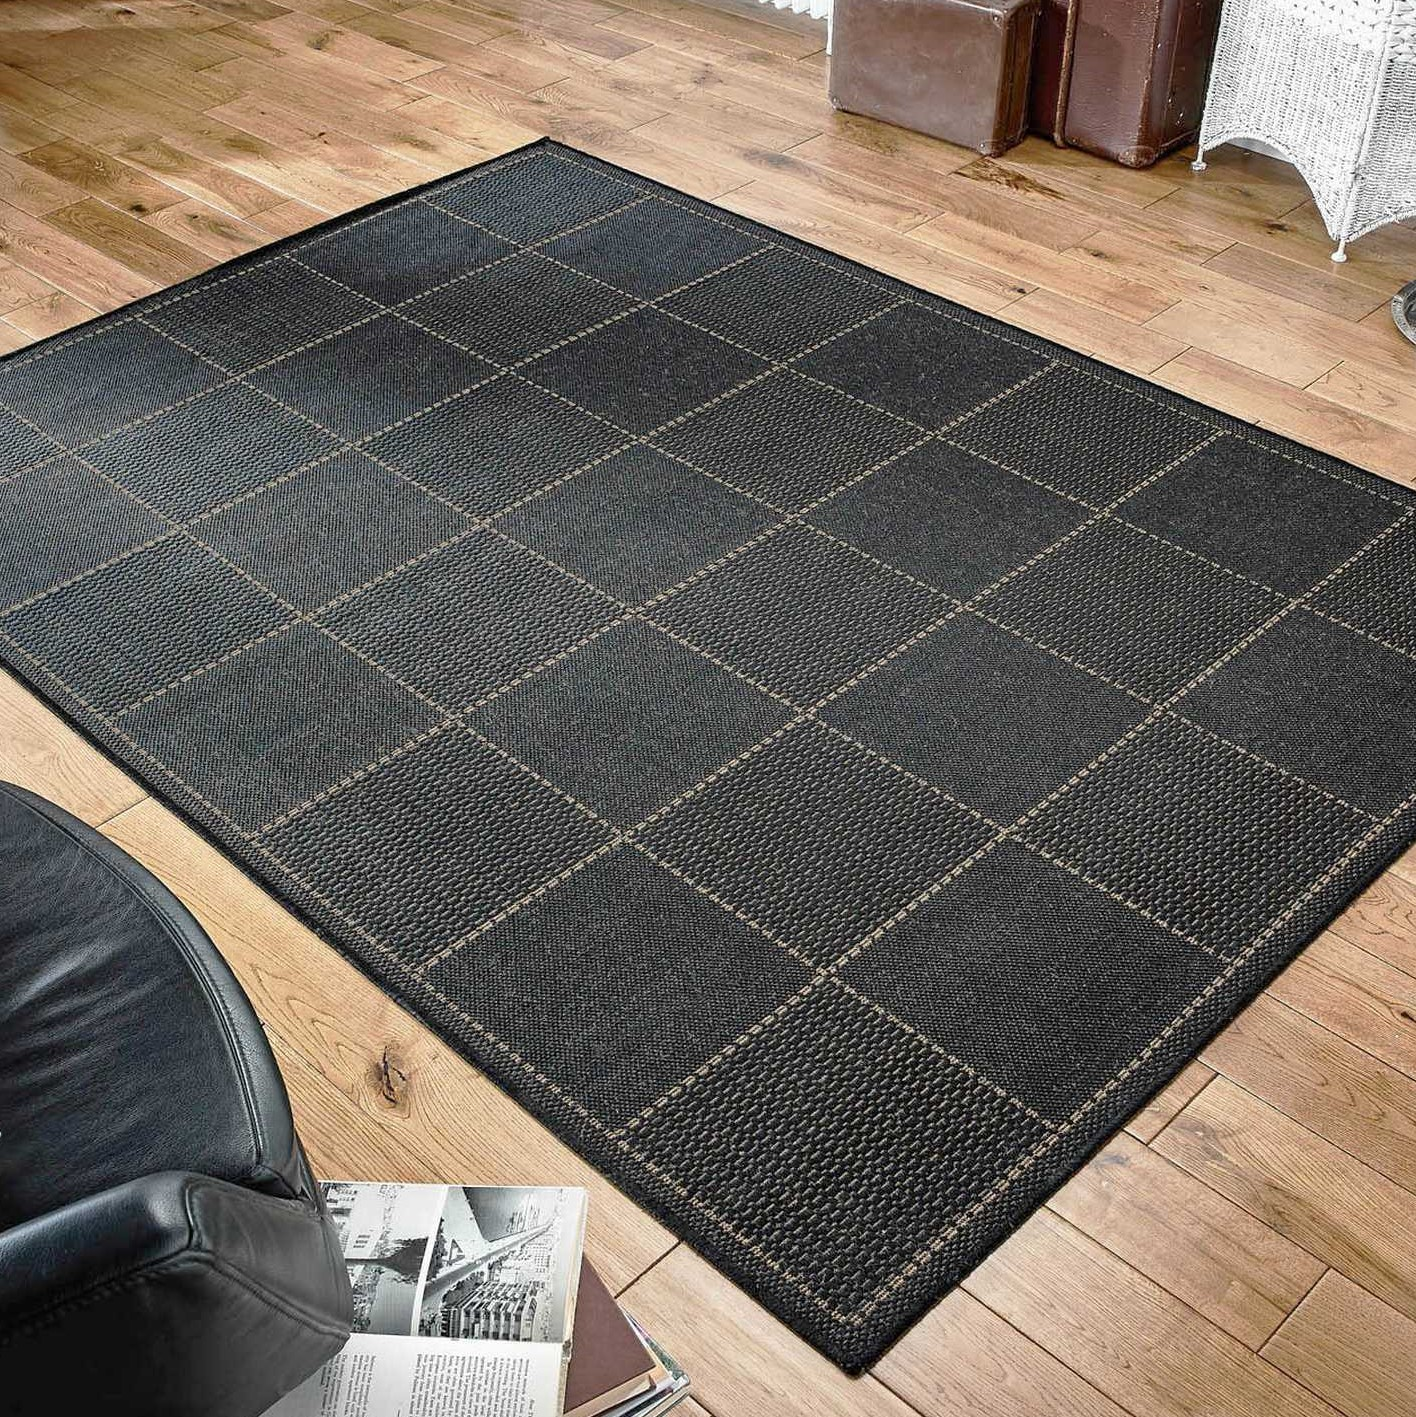 Super Sisalo - Black & Kitchen Rugs | Discover our Best Selling Styles with Free Delivery